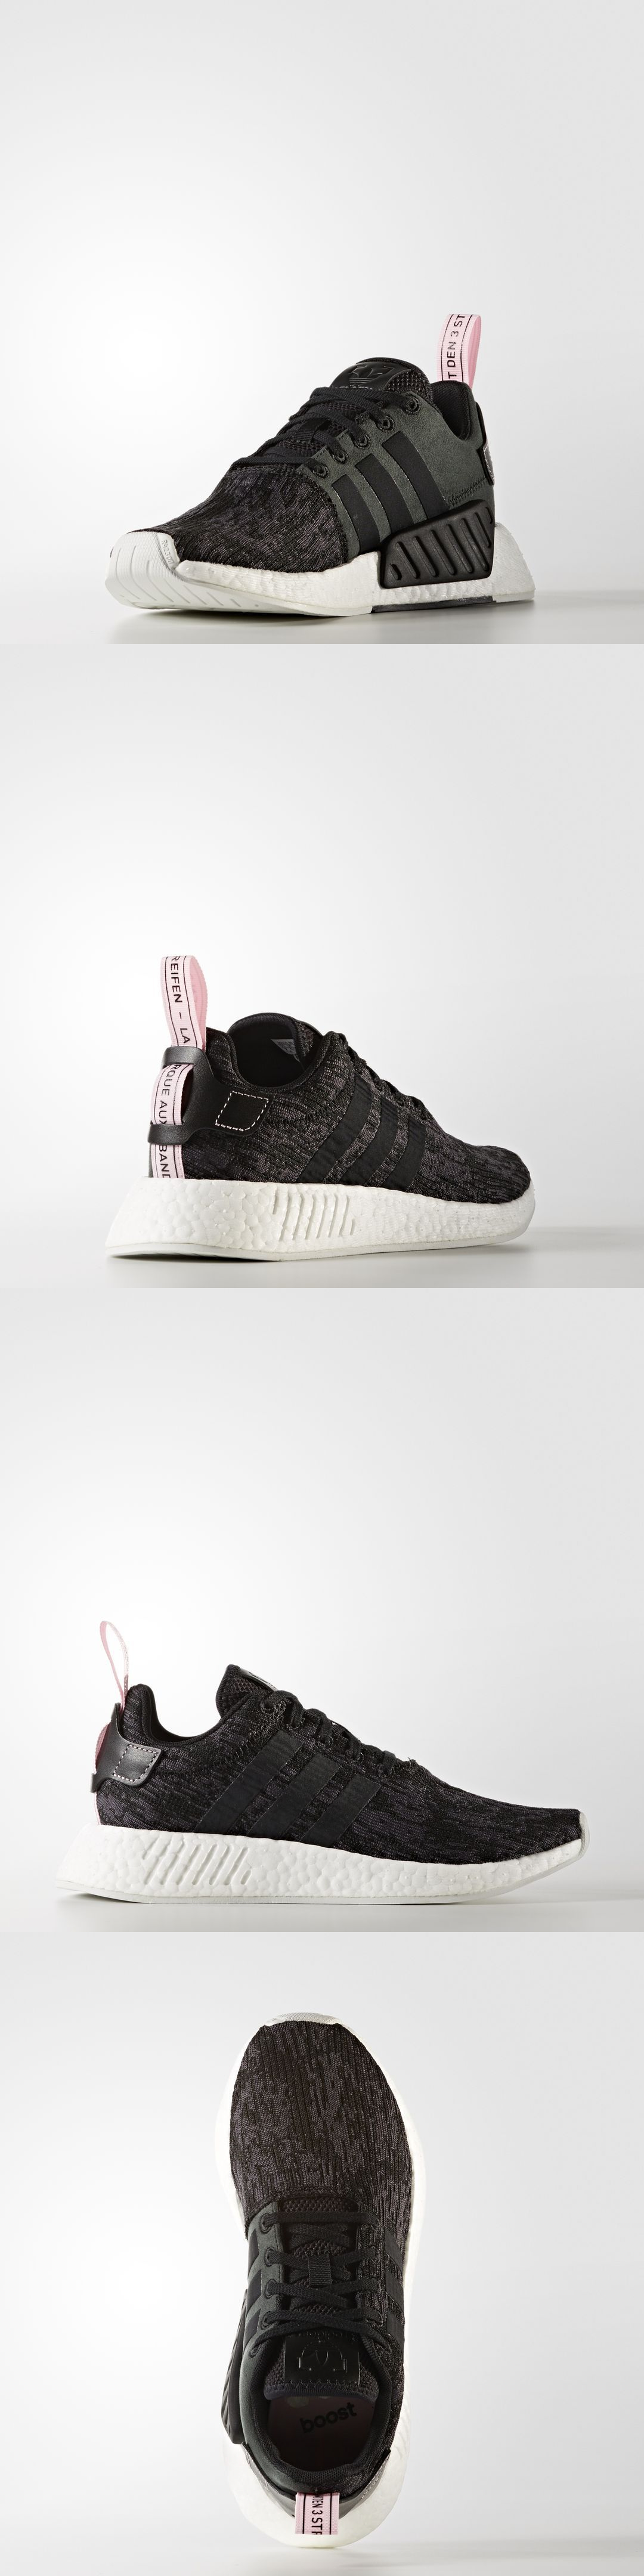 new arrival dfd66 0d98f Giày thể thao Adidas Originals NMD R2 Boost W black / white BY9314